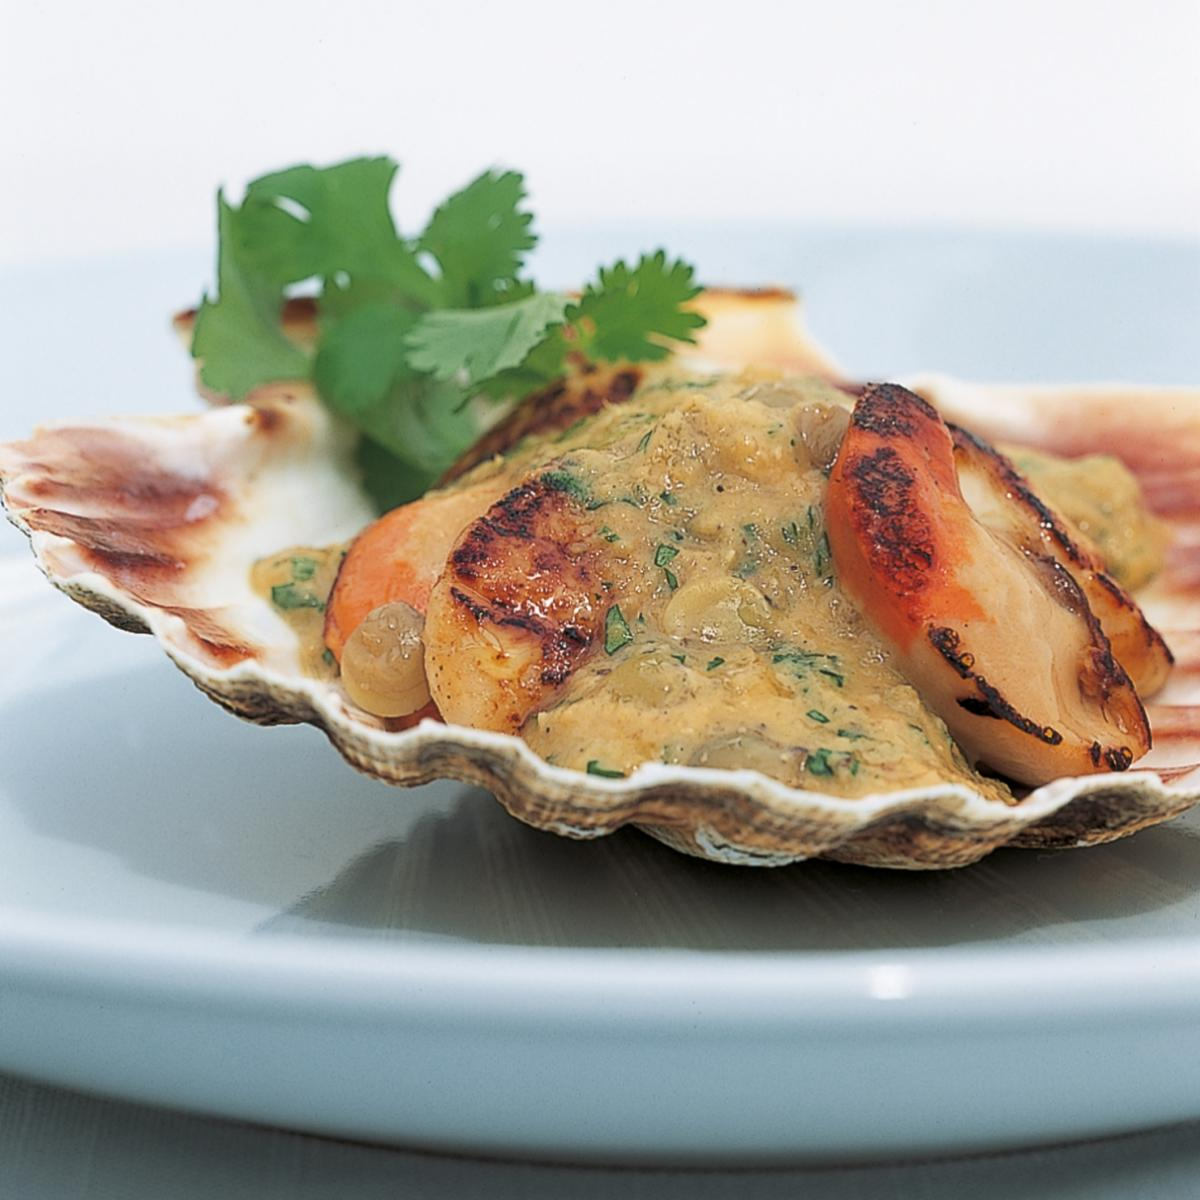 A picture of Delia's Shaun Hill's Sautéed Scallops with Lentil Sauce recipe